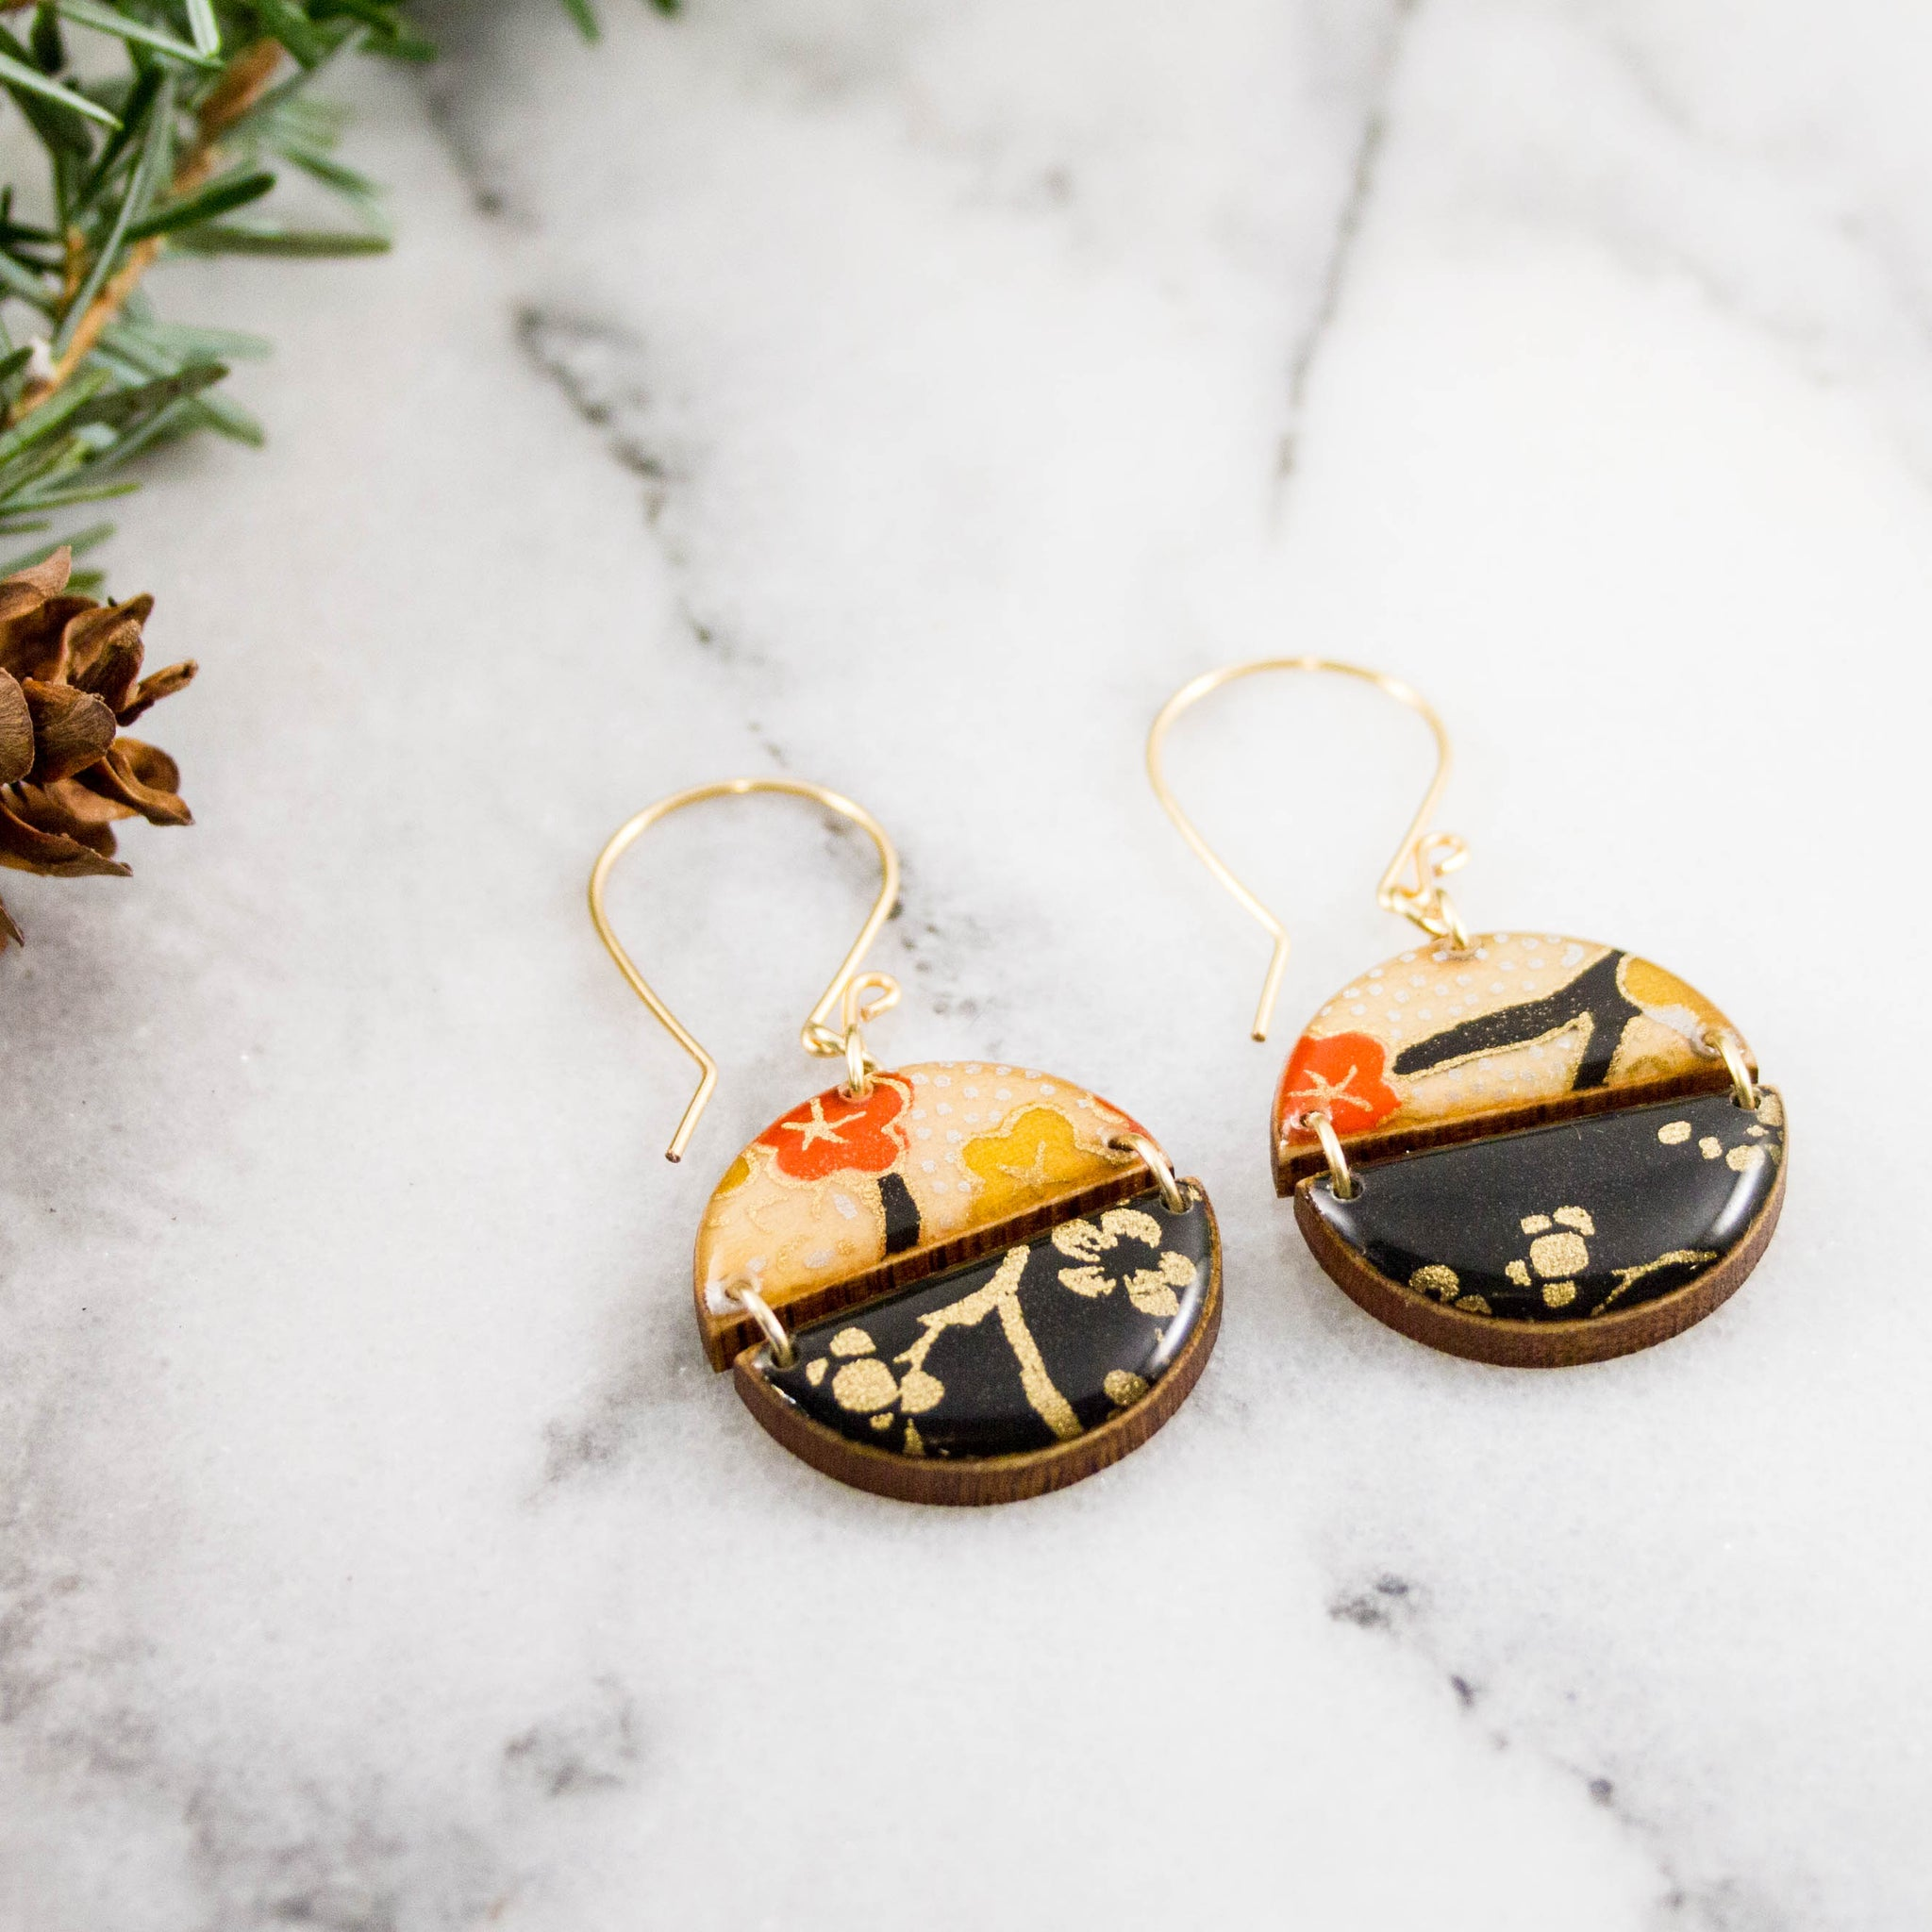 2 Halves Japanese Paper Earrings- Black + Gold